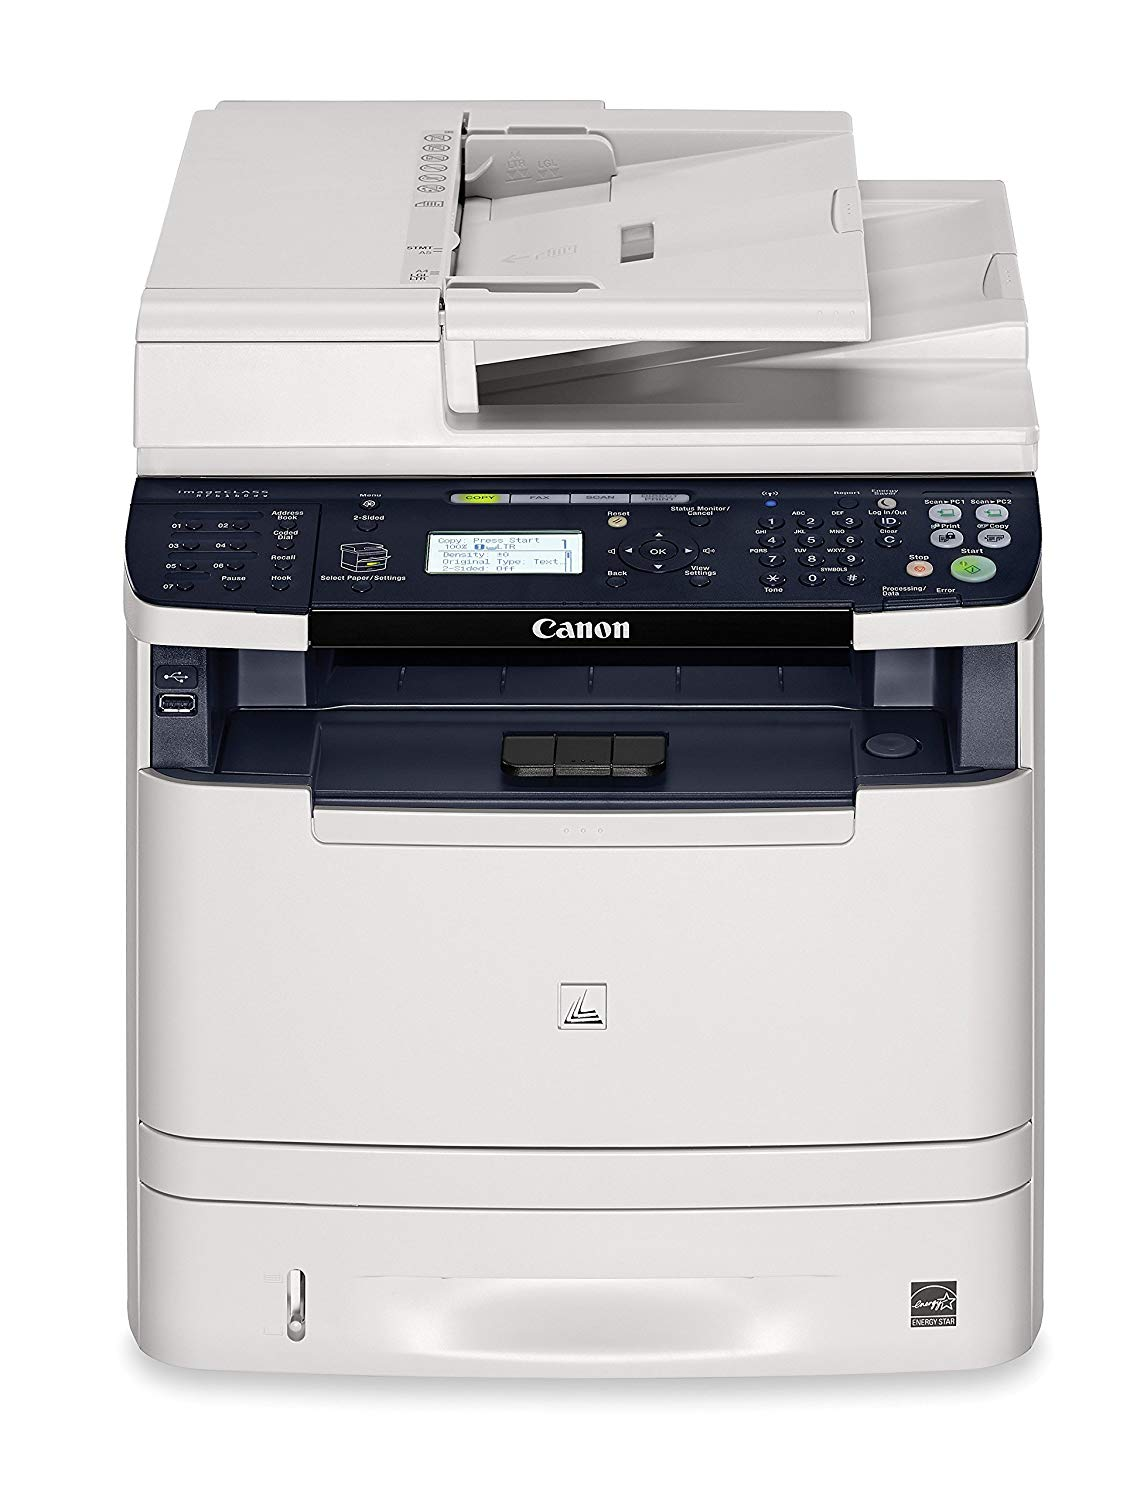 Canon Laser Printer Lbp6000 Driver Download : canon, laser, printer, lbp6000, driver, download, Сурдхои, Аron, Afchar, Roblox, Shindo, Codes, February, аron, Afshar, Tarkam, Kardi, Julieta